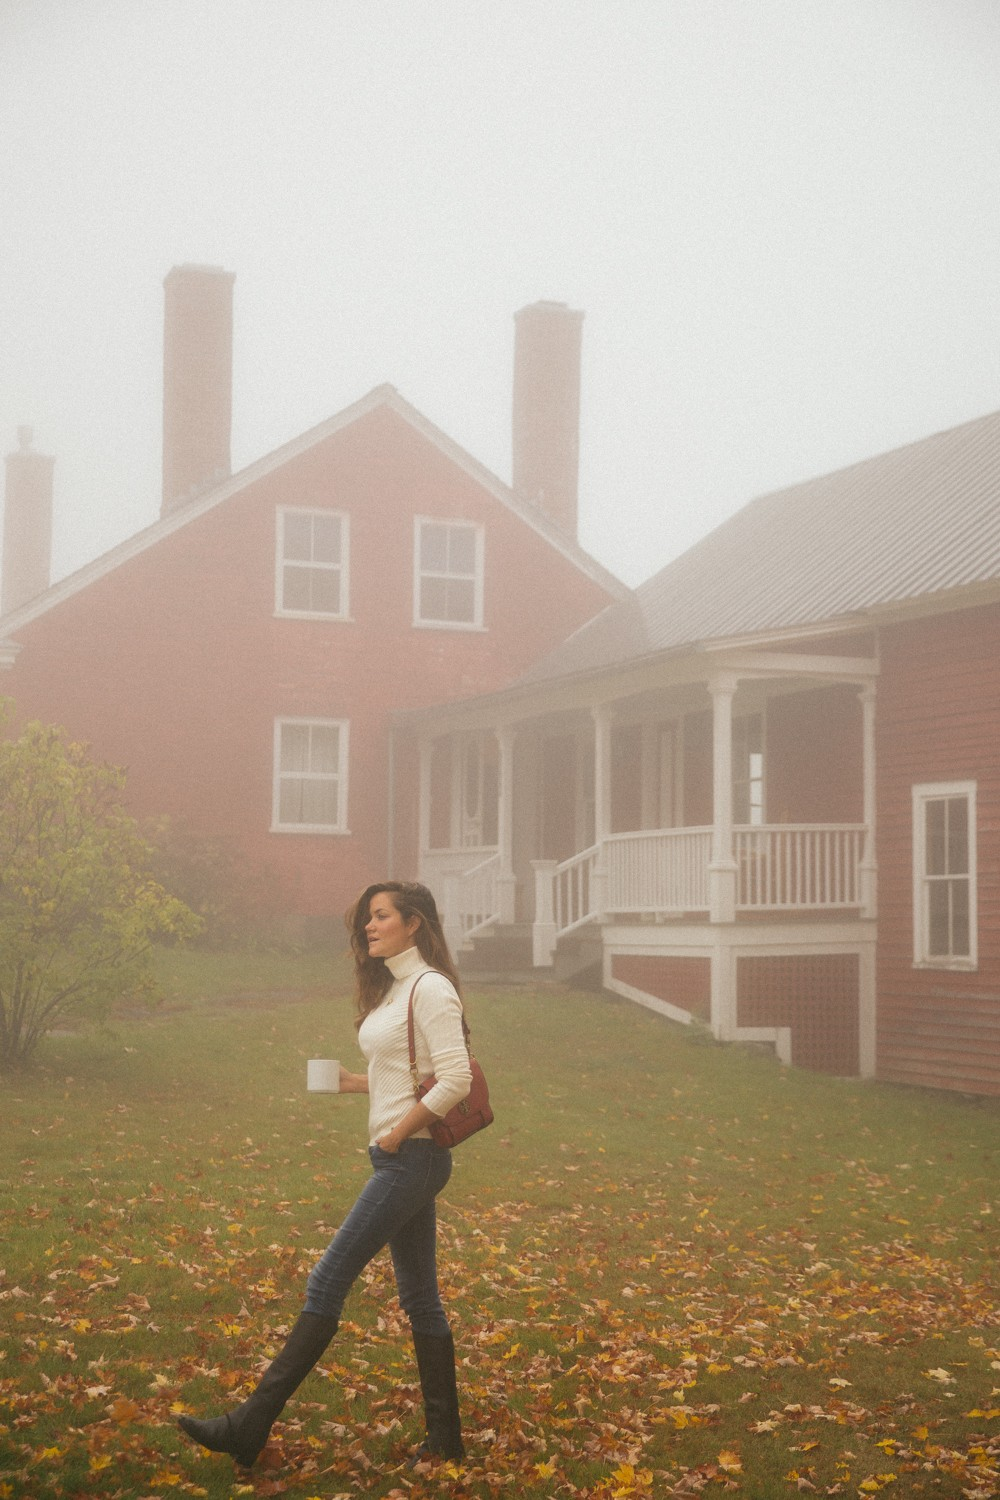 Foggy morning in Vermont